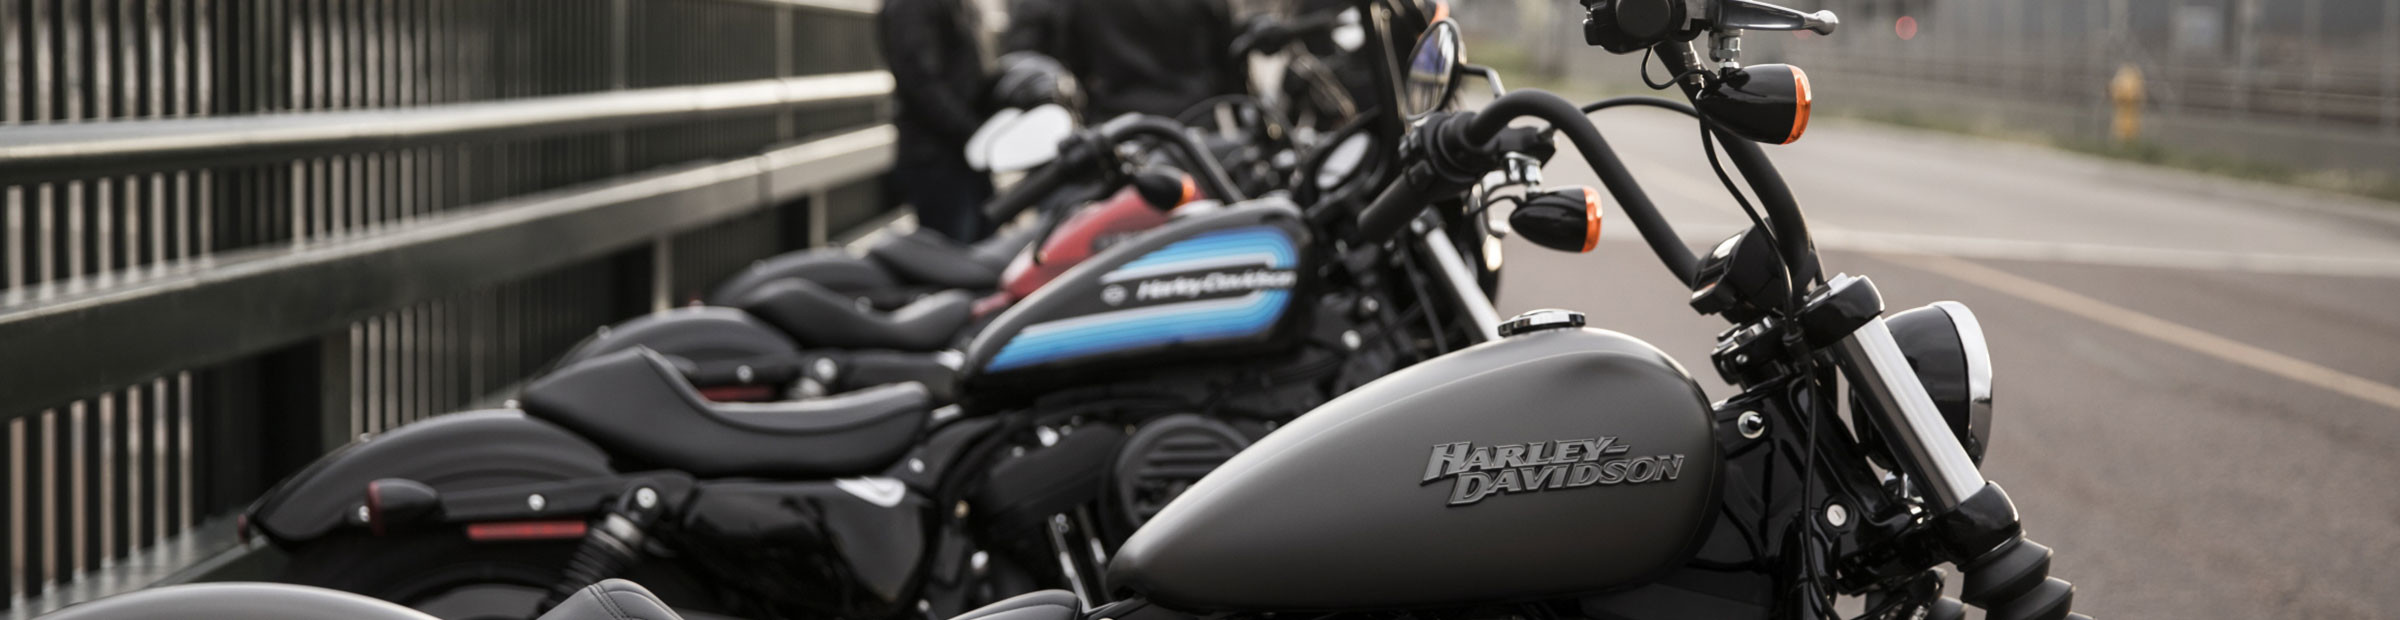 Trade-In Your Ride at Diamondback Harley-Davidson®!